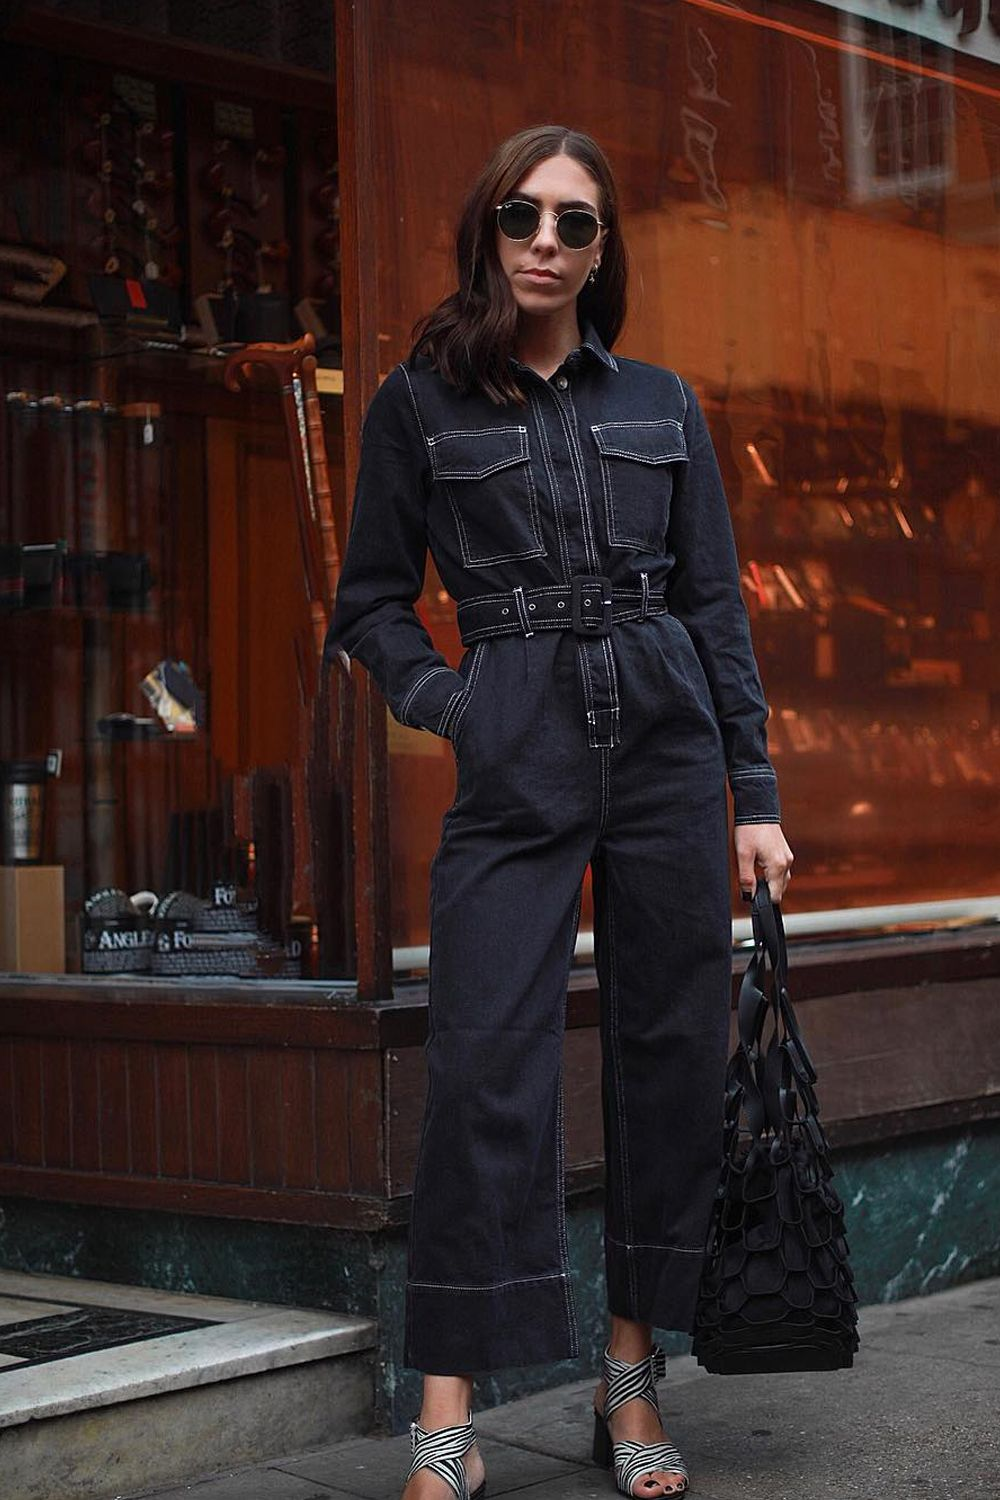 The Last 7 Topshop Boilersuits Have Sold Out, So These New Versions Will Too